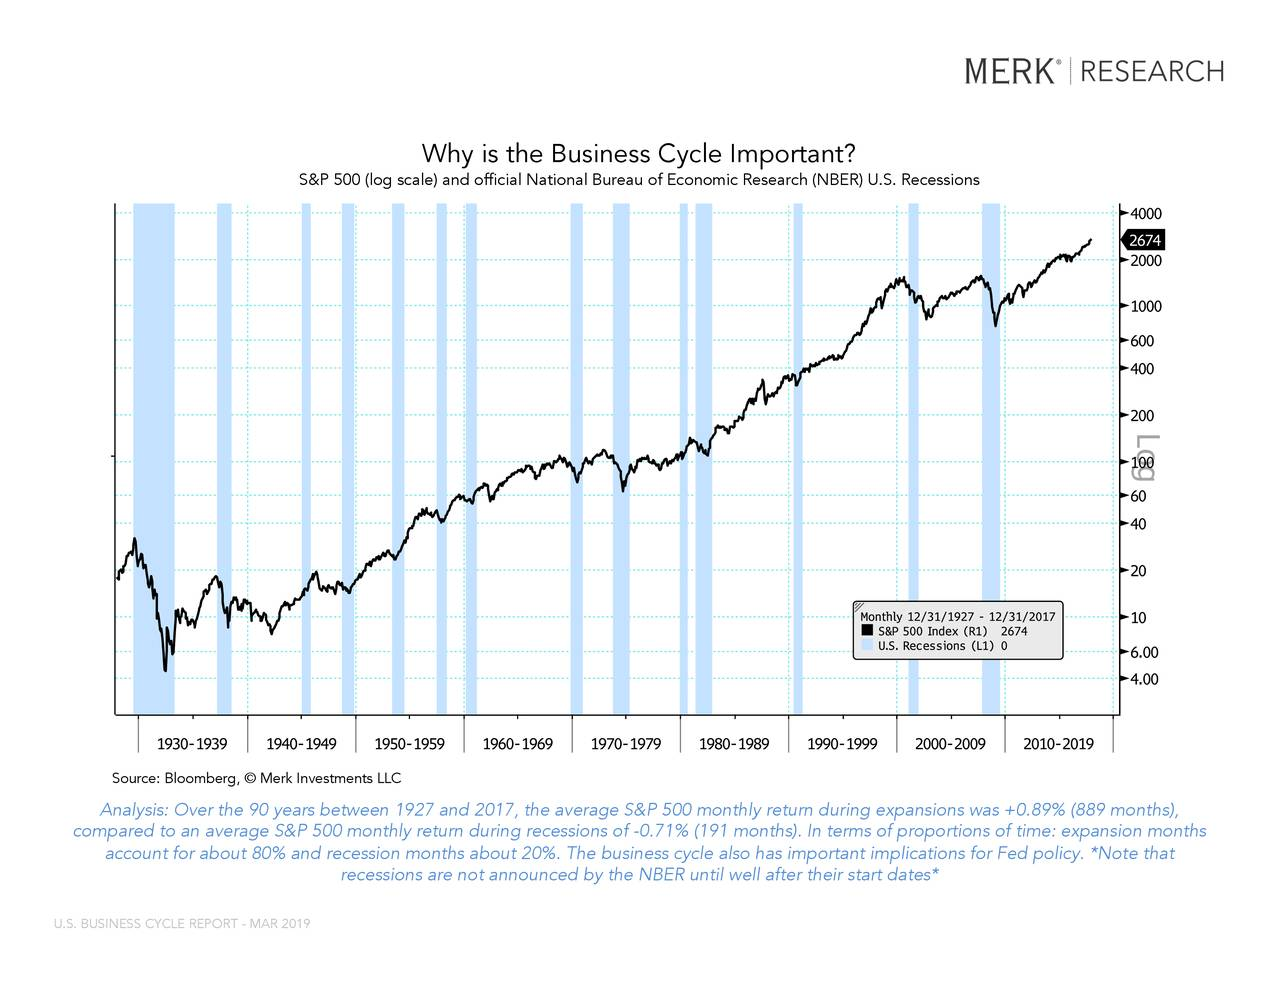 """SPX Index (S&P 500 Index) SRINDEX Index (U.S. Recession Indicator... Why is the Business Cycle Important? S&P 500 (log scale) and official National Bureau of Economic Research (NBER) U.S. Recessions This rSource: Bloomberg,© Merk Investments LLCany way. The BLOOMBERG PROFESSIONAL service and BLOOMBERG Data are owned and distributed locally by Bloomberg Finance LP (""""BFLP"""") and its subsidiaries in all jurisdictions other than Argentina, Bermuda, China, India, Japan and Korea (the (""""BFLP Countries""""). BFLP is a wholly-owned subsidiary of Bloomberg LP (""""BLP""""). BLP provides BFLP with all the global marketing and operational support and service for the Services and distributes the Services either directly or through a non-BFLP subsidiary in the BLP Countries. BFLP, BLP and their affiliates do not provide investment advice, and nothing herein shall constitute an offer of financial instruments by BFLP, BLP or their affiliates. Analysis: Over the 90 years between 1927 and 2017, the average S&P 500 monthly return during expansions was +0.89% (889 months), coBloomberg ® 02/01/2019 18:54:18turn during recessions of -0.71% (191 months). In terms of proportions of time: expansi on months 1 account for about 80% and recession months about 20%. The business cycle also has important implications for Fed policy. *Not e that recessions are not announced by the NBER until well after their start dates* U.S. BUSINESS CYCLE REPORT - MAR 2019"""